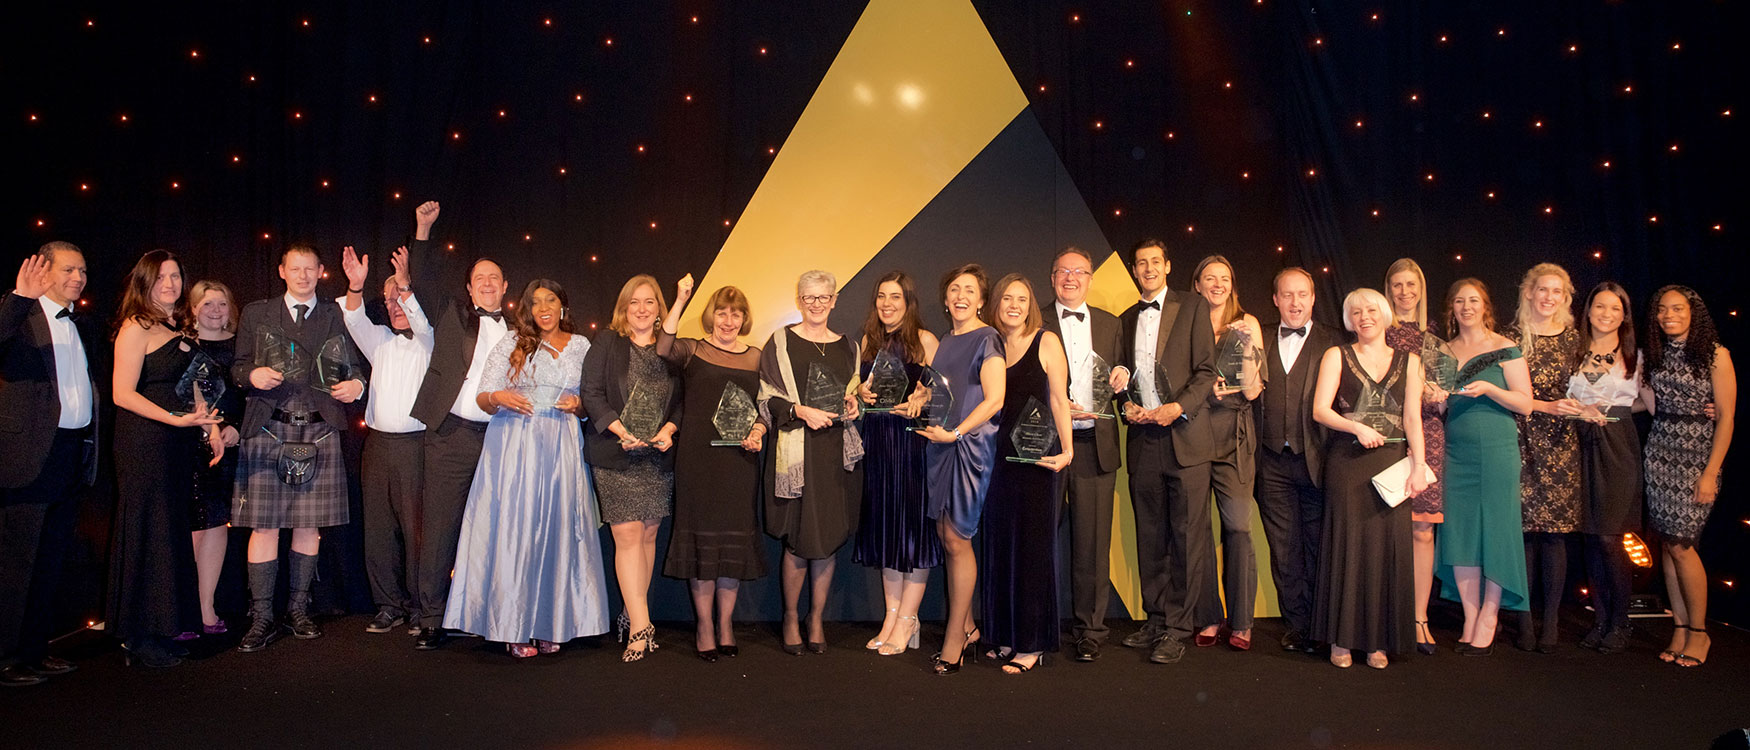 The ICSA Annual Awards 2018